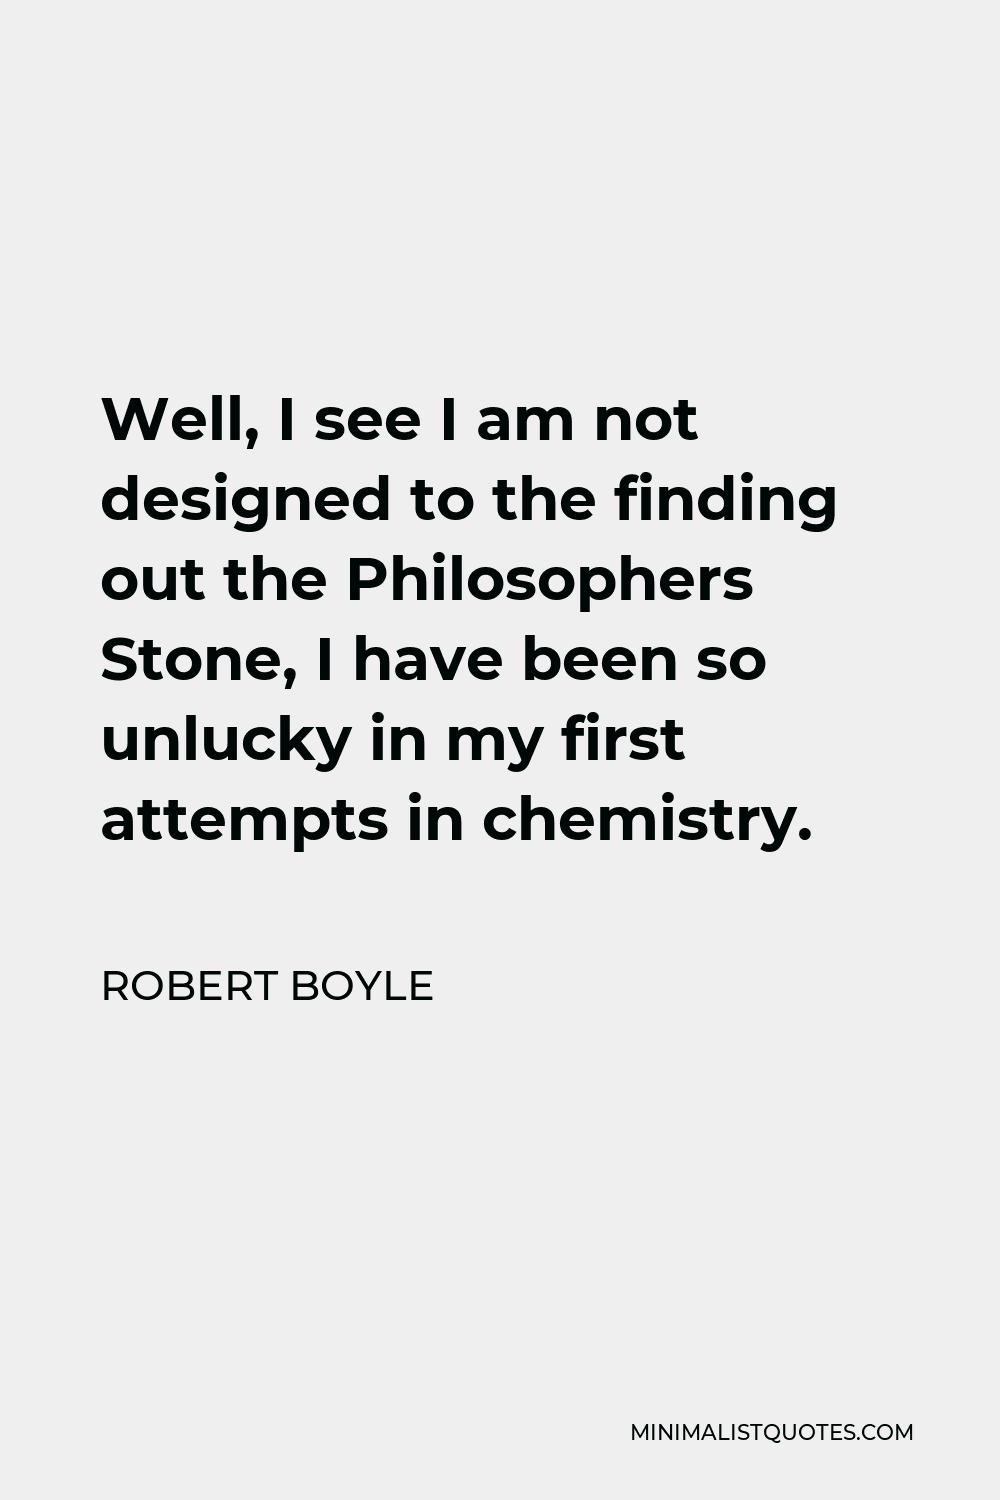 Robert Boyle Quote - Well, I see I am not designed to the finding out the Philosophers Stone, I have been so unlucky in my first attempts in chemistry.